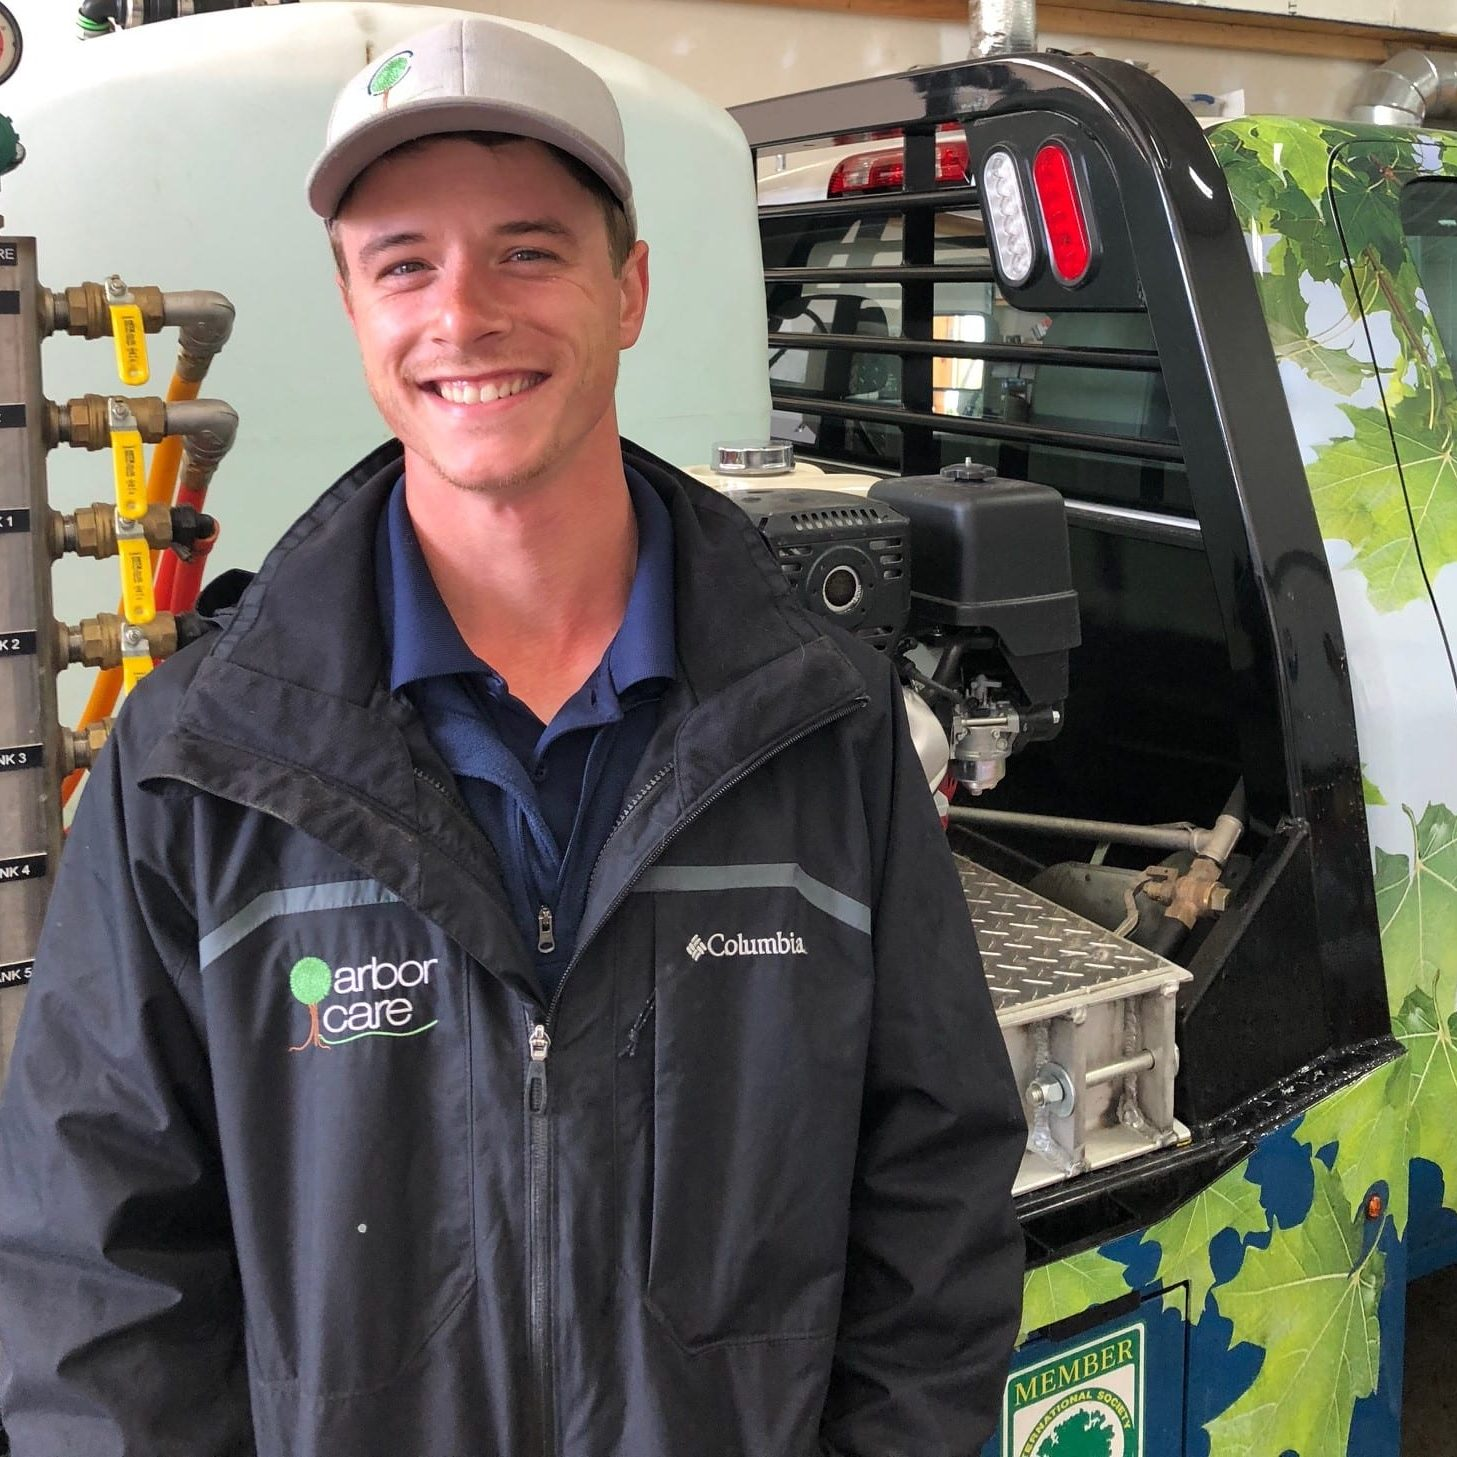 Terry Wooters - Assistant Plant Care Manager